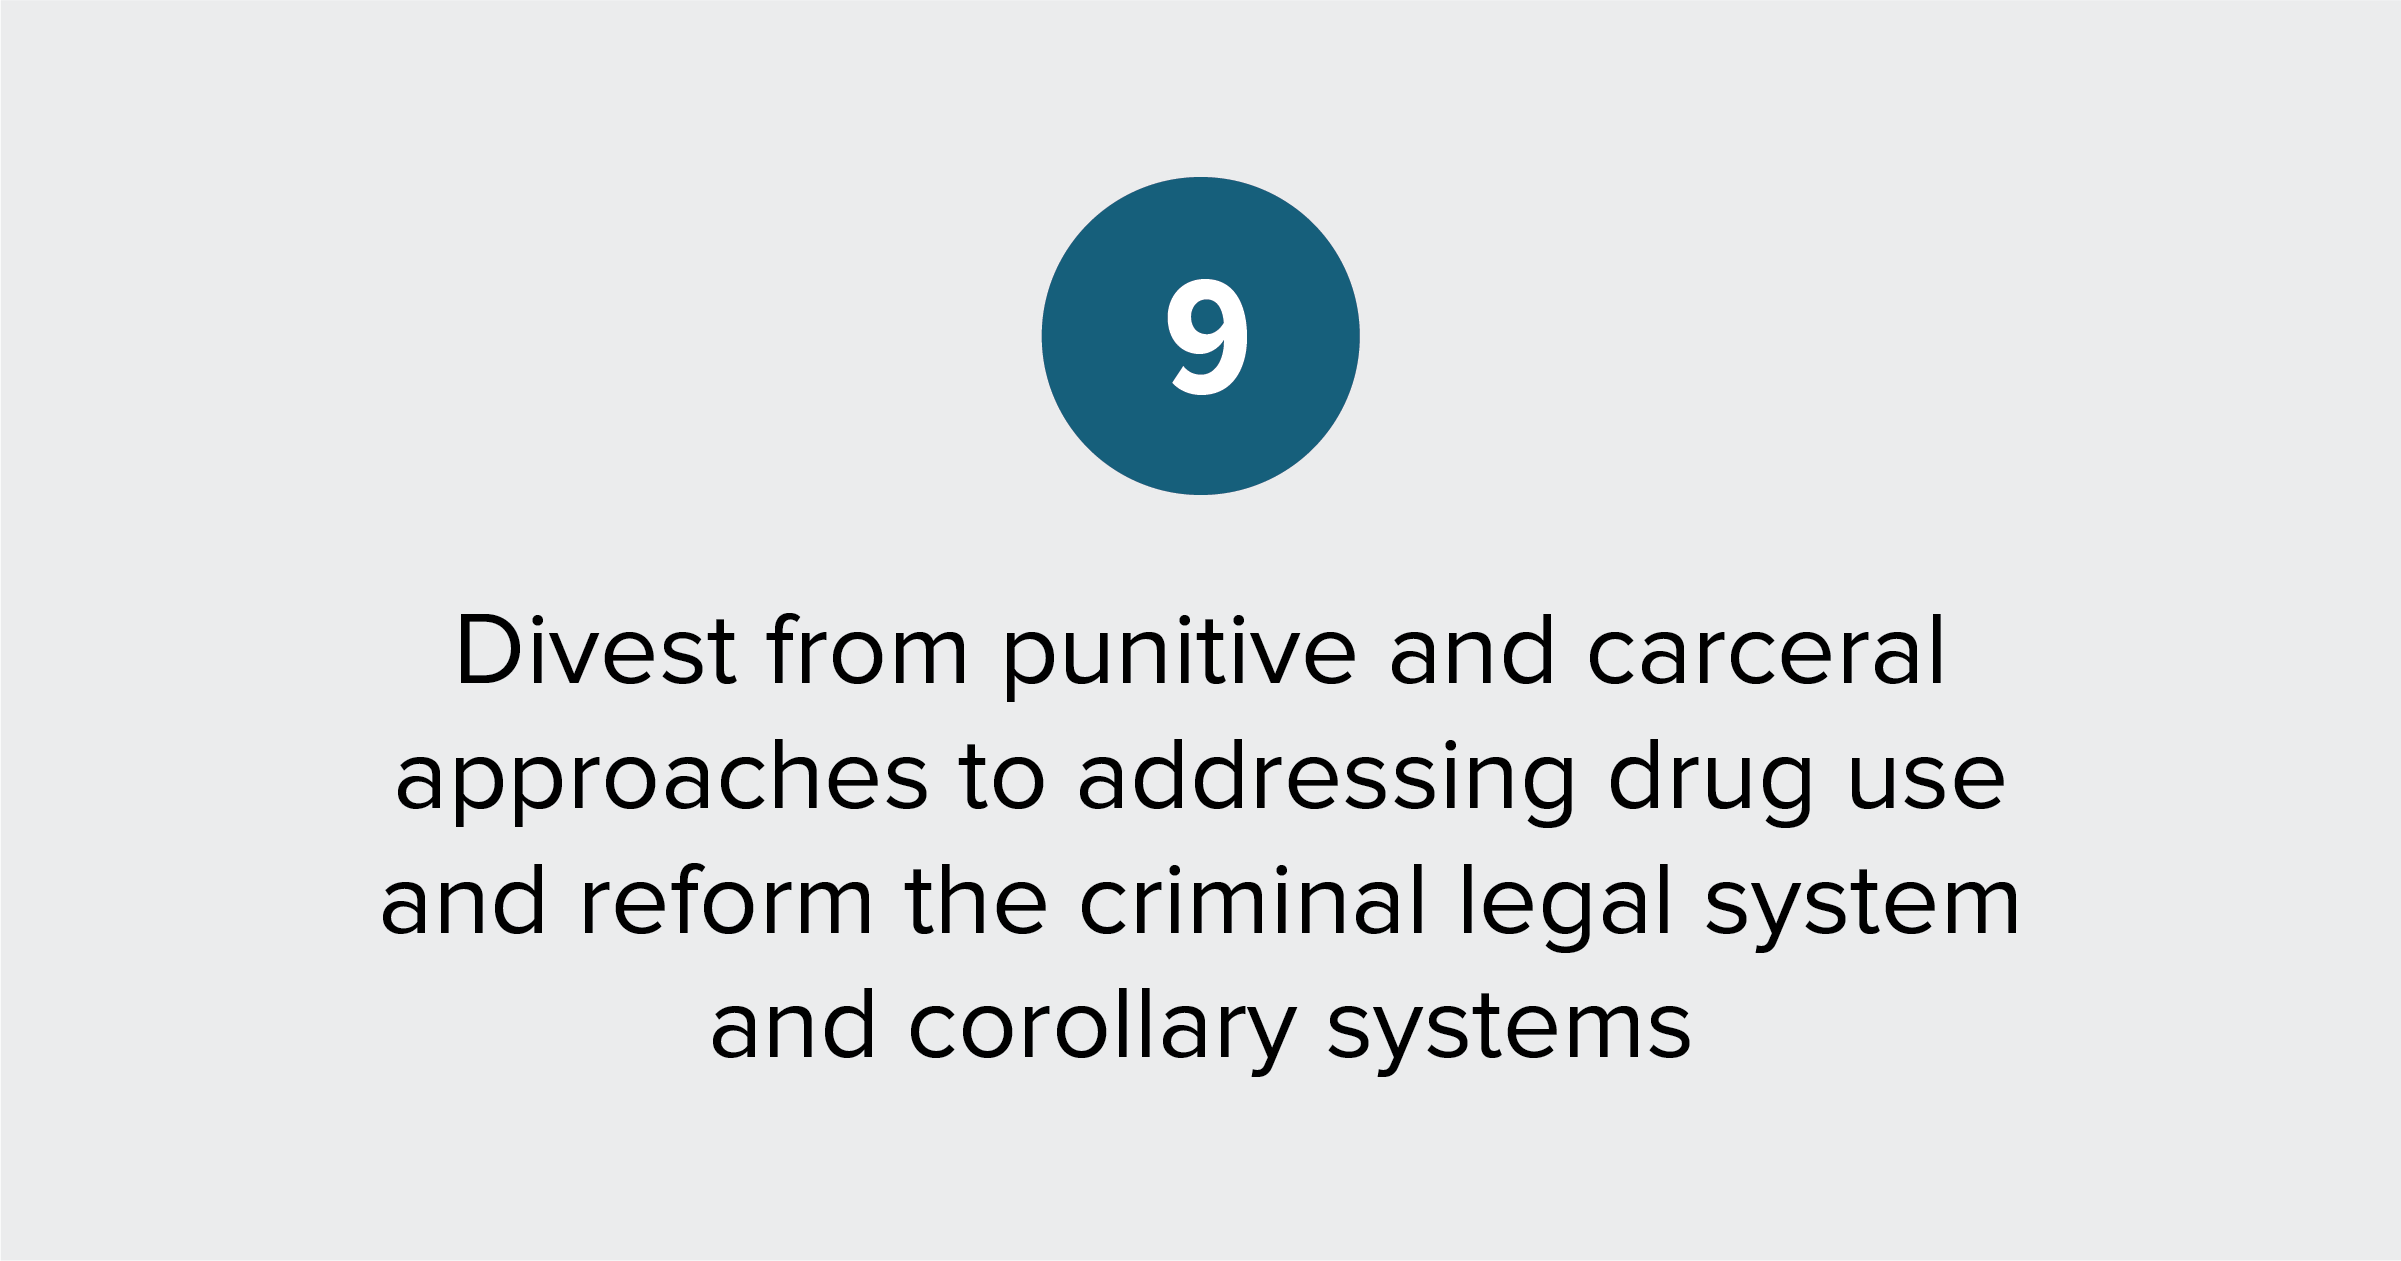 Text of report recommendation 9: End punitive and carceral approaches to addressing drug use and reform the criminal legal system and corollary systems